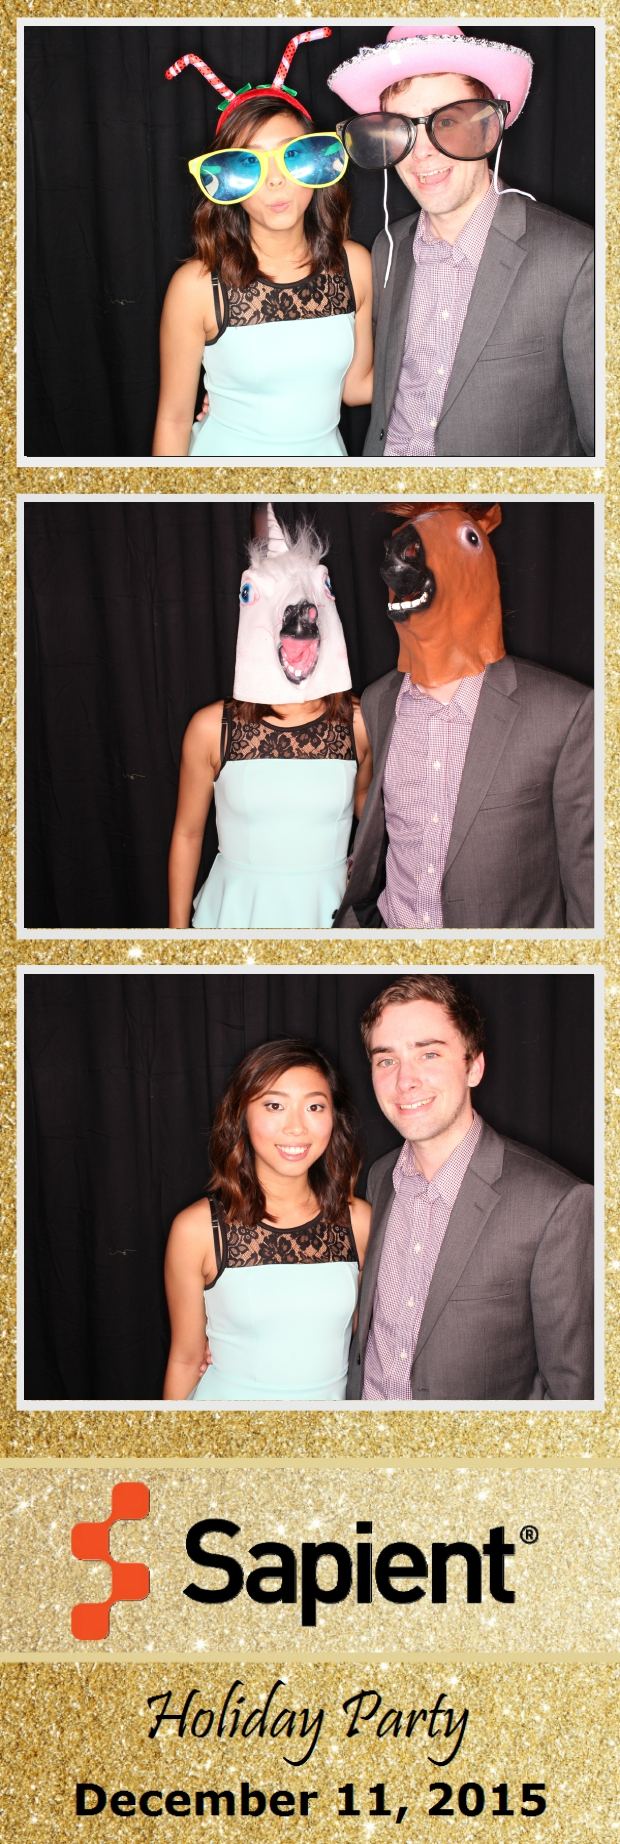 Guest House Events Photo Booth Sapient Holiday Party (29).jpg